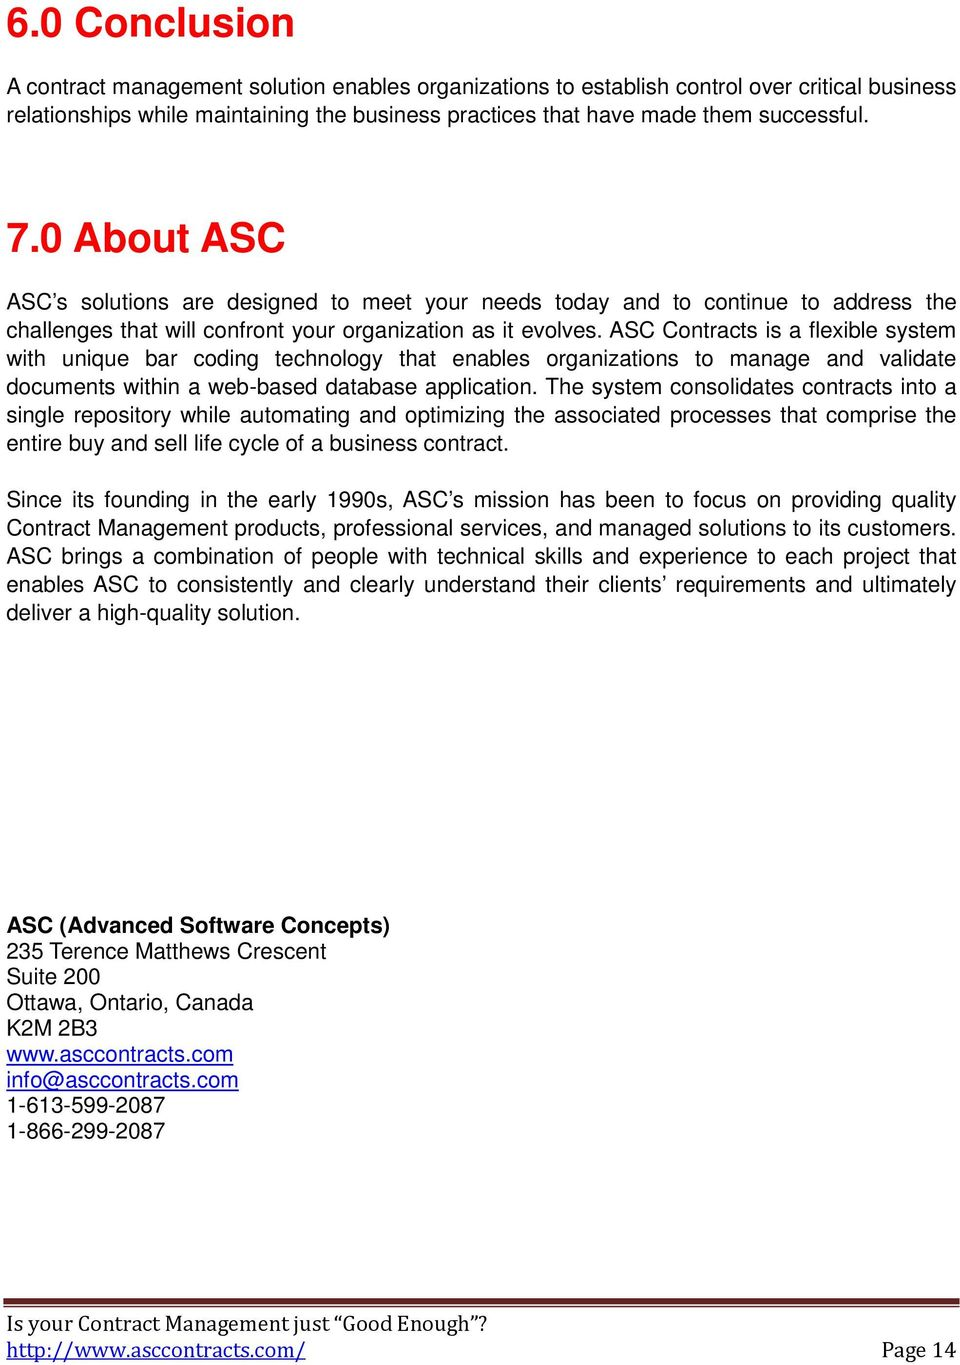 ASC Contracts is a flexible system with unique bar coding technology that enables organizations to manage and validate documents within a web-based database application.